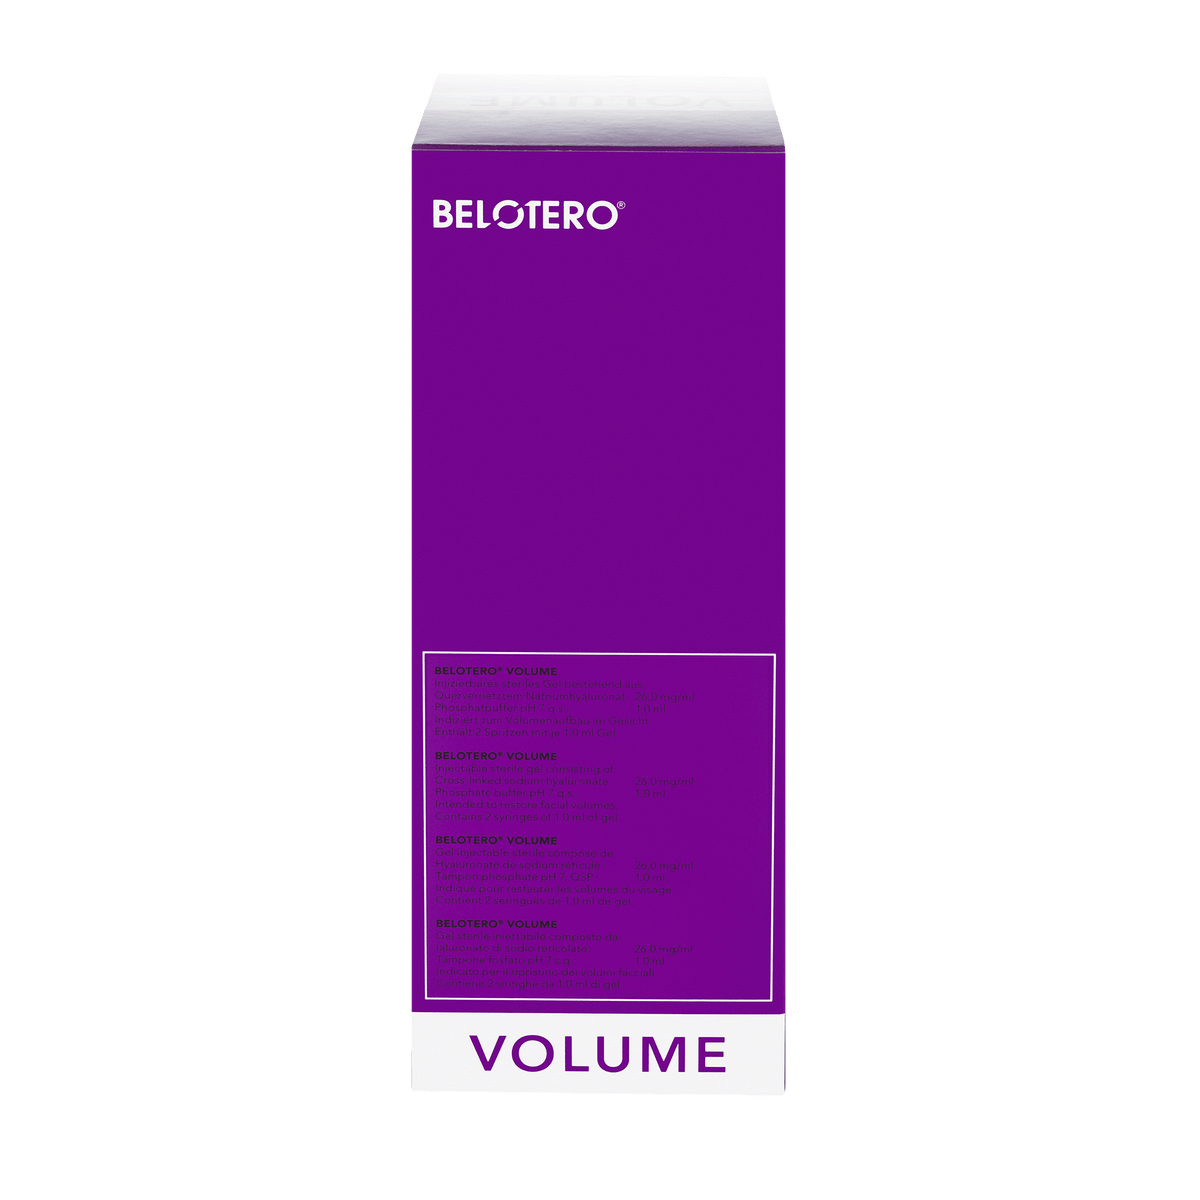 Merz - Belotero Volume 2 x 1ml - DANYCARE